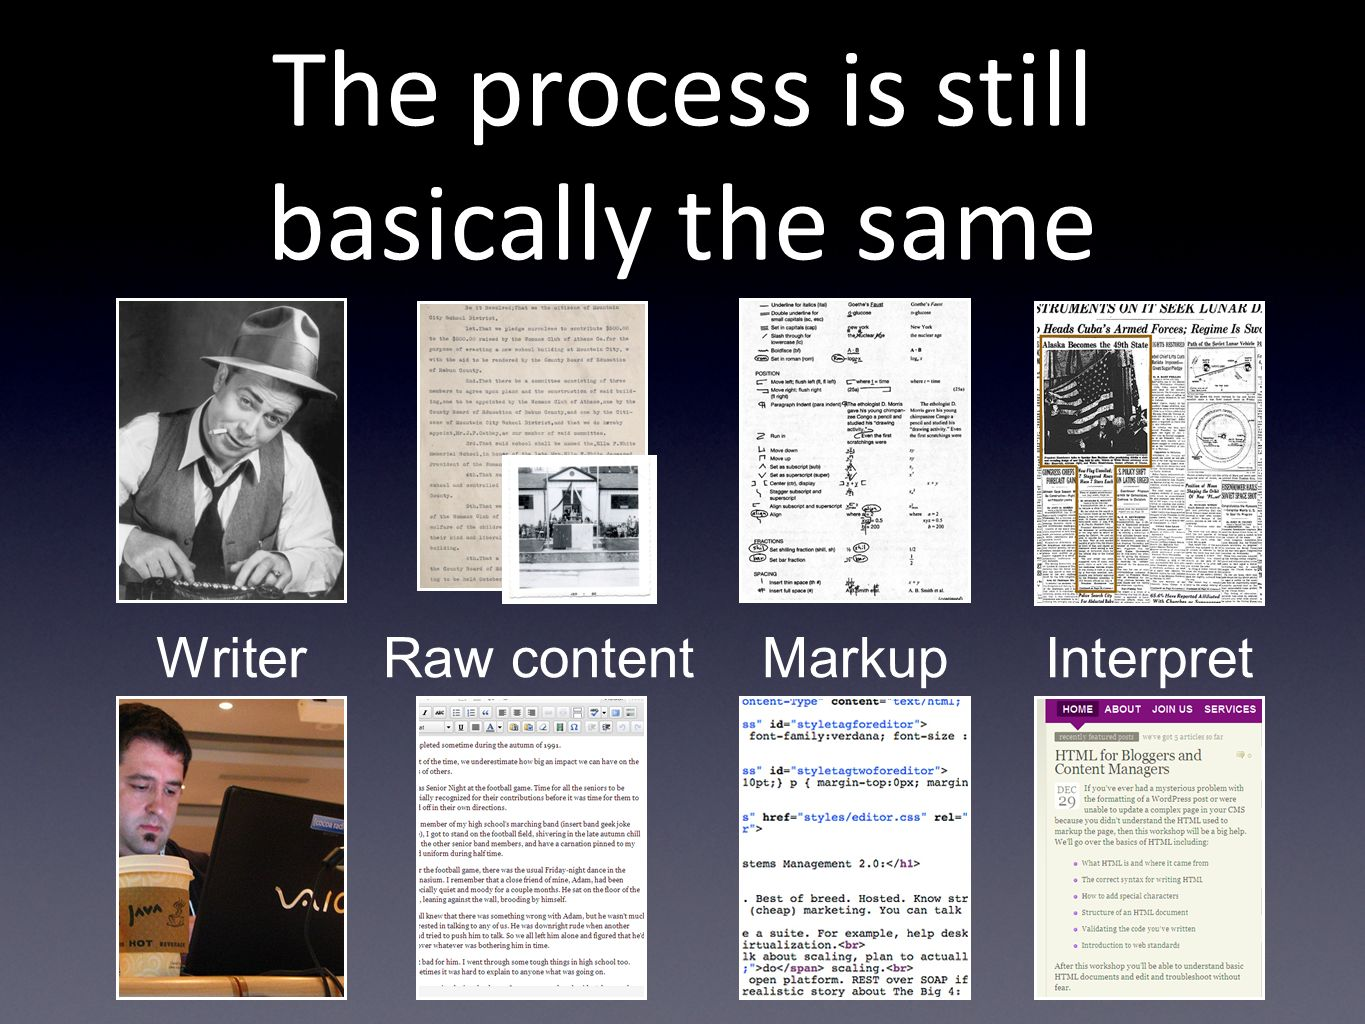 The process is still basically the same WriterRaw contentMarkupInterpret